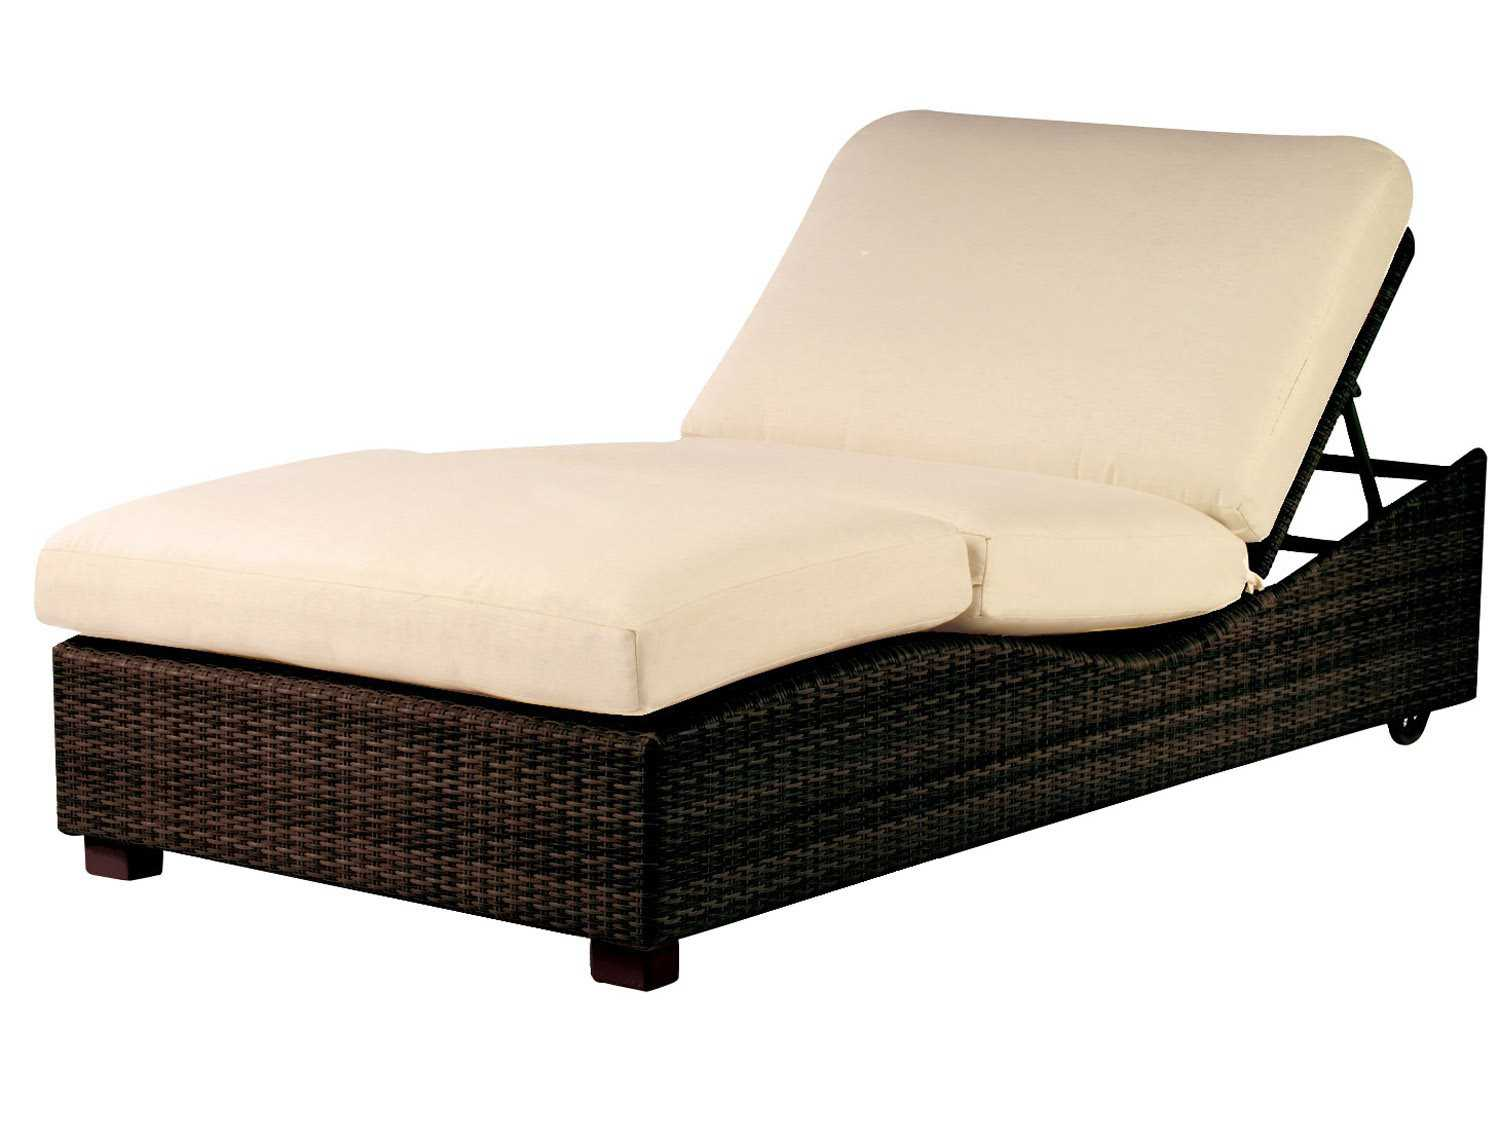 Whitecraft Montecito Double Chaise Lounge Replacement